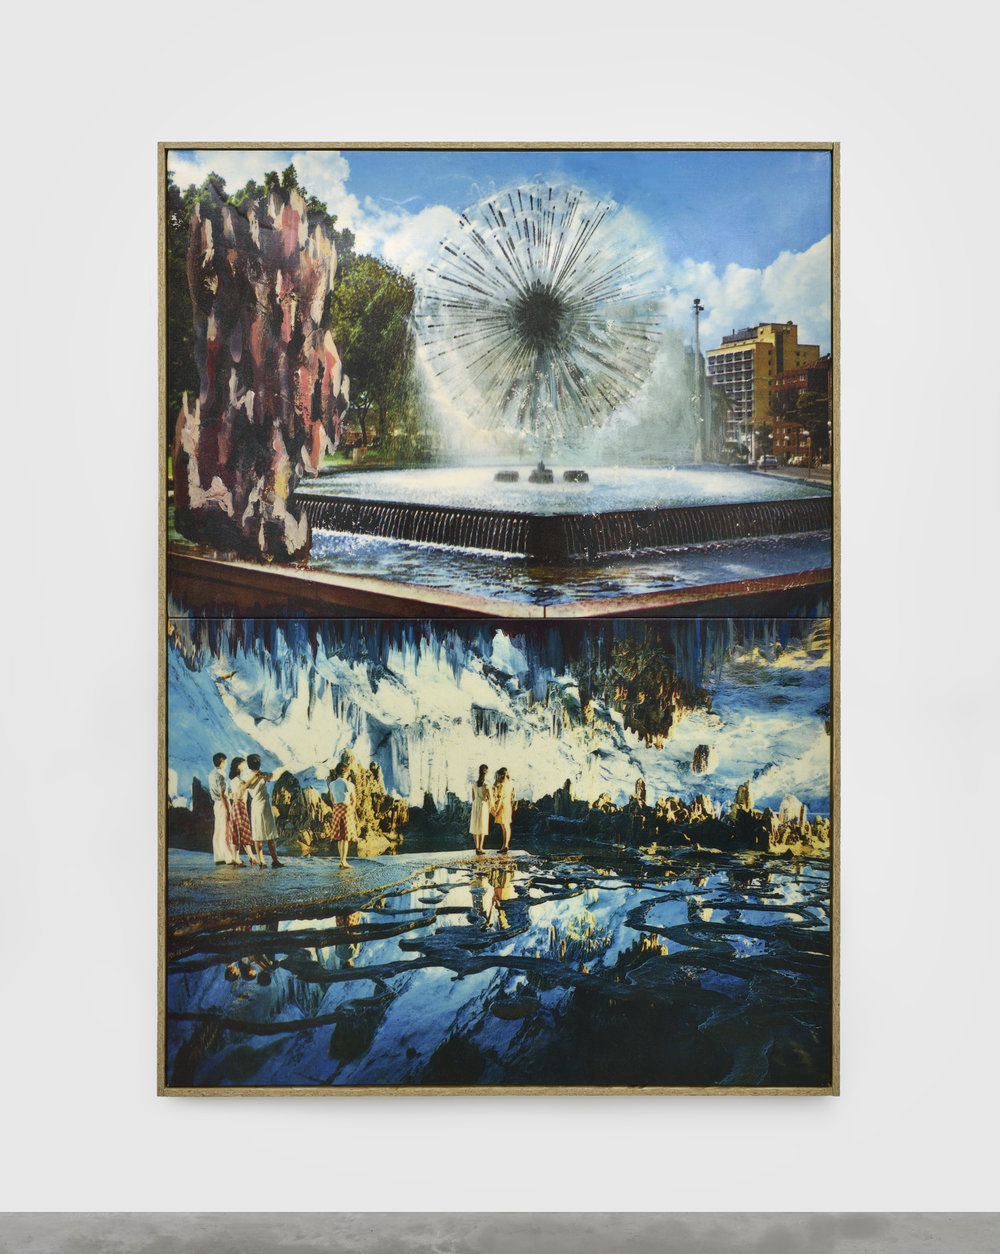 La vision, 2016 print on canvas, resin, glitter 69 9/32 x 92 1/8 inches - 176 x 234 cm